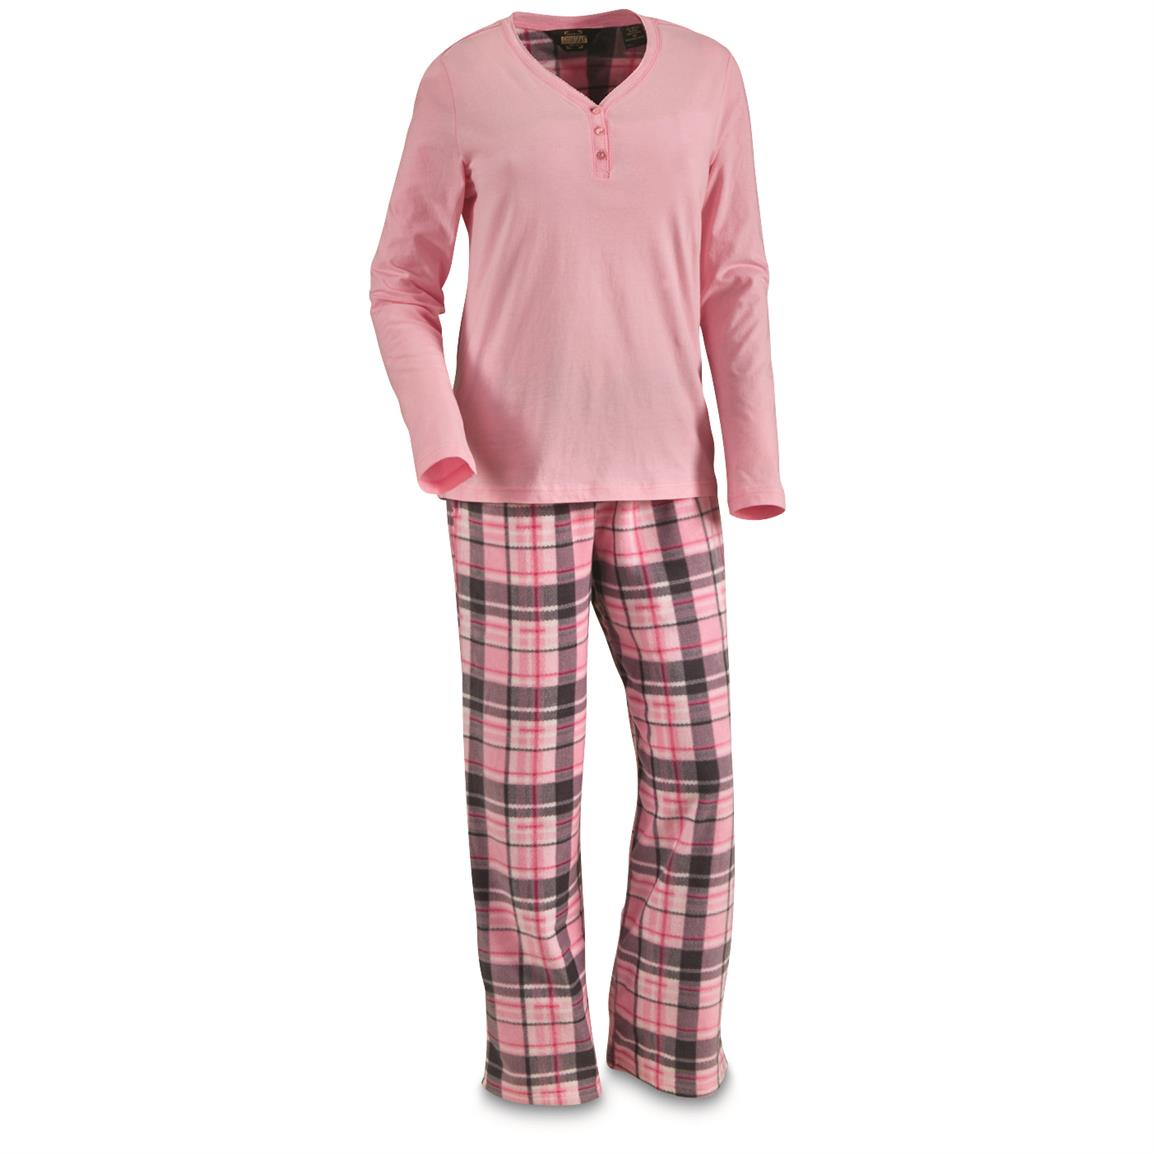 Guide Gear Women's Plaid Pajama Set, Pink Plaid